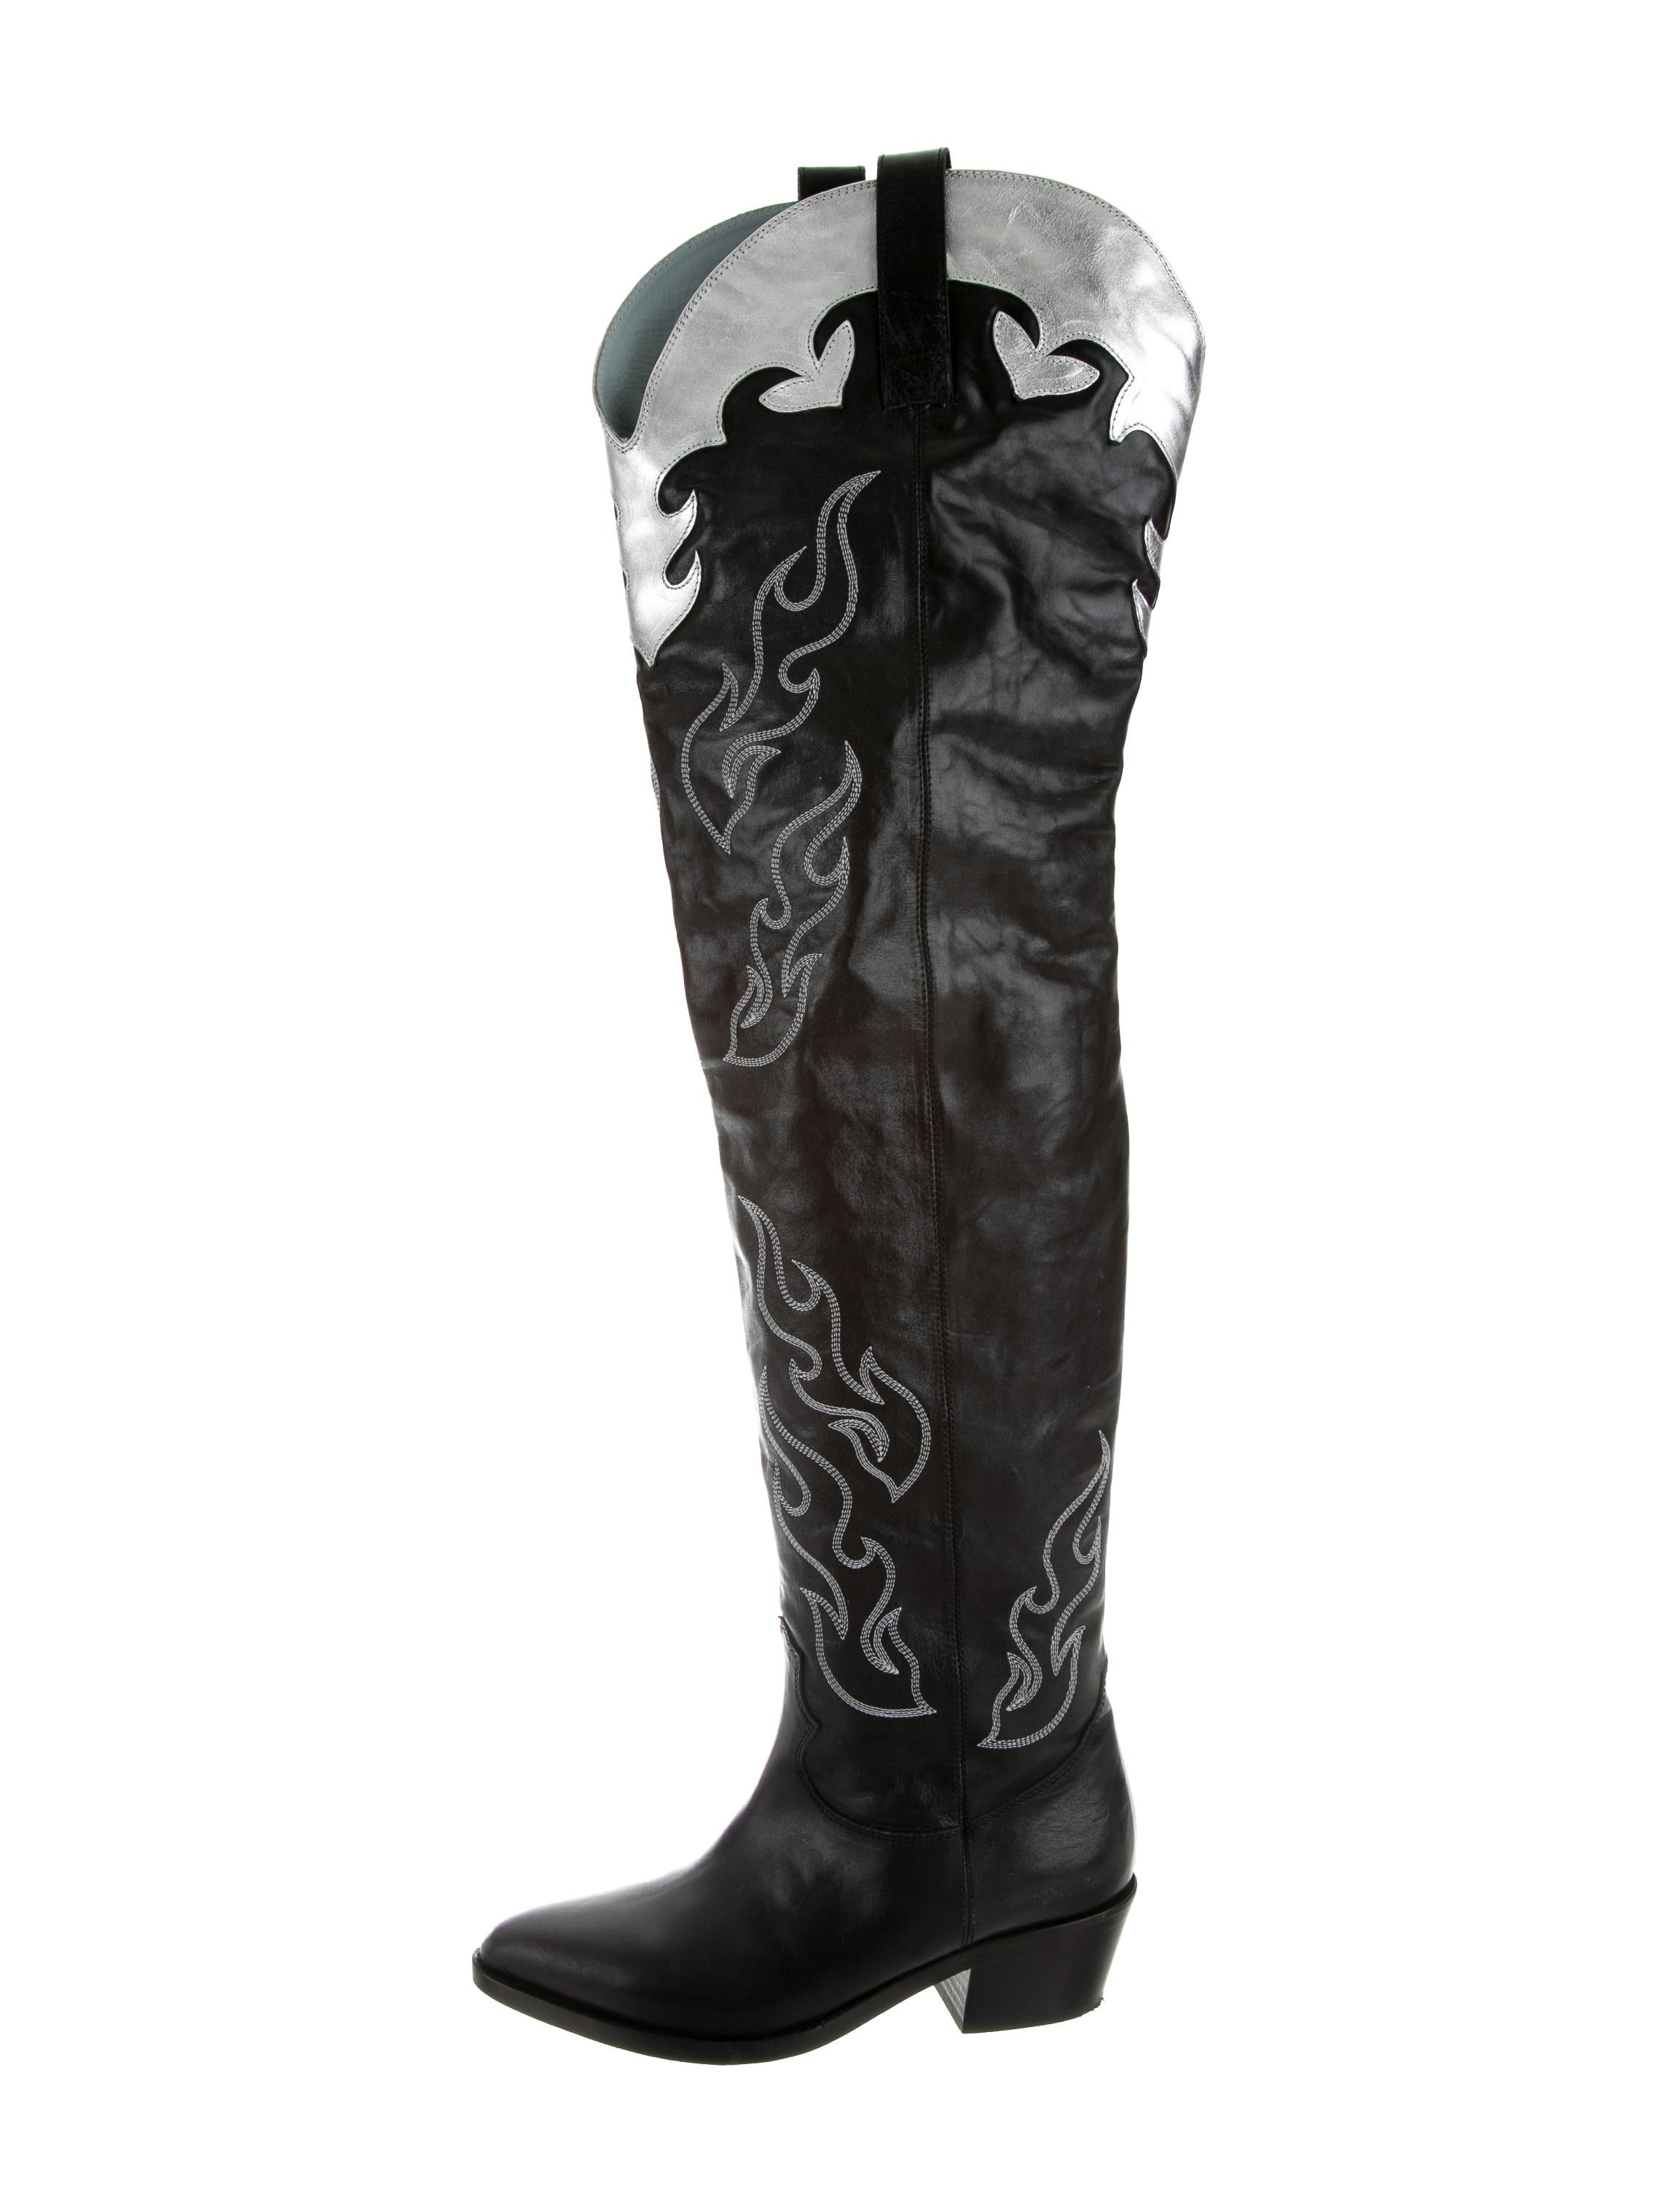 4f92f1d31ab Chiara Ferragni Over-The-Knee Cowgirl Boots - Shoes - WYX20111